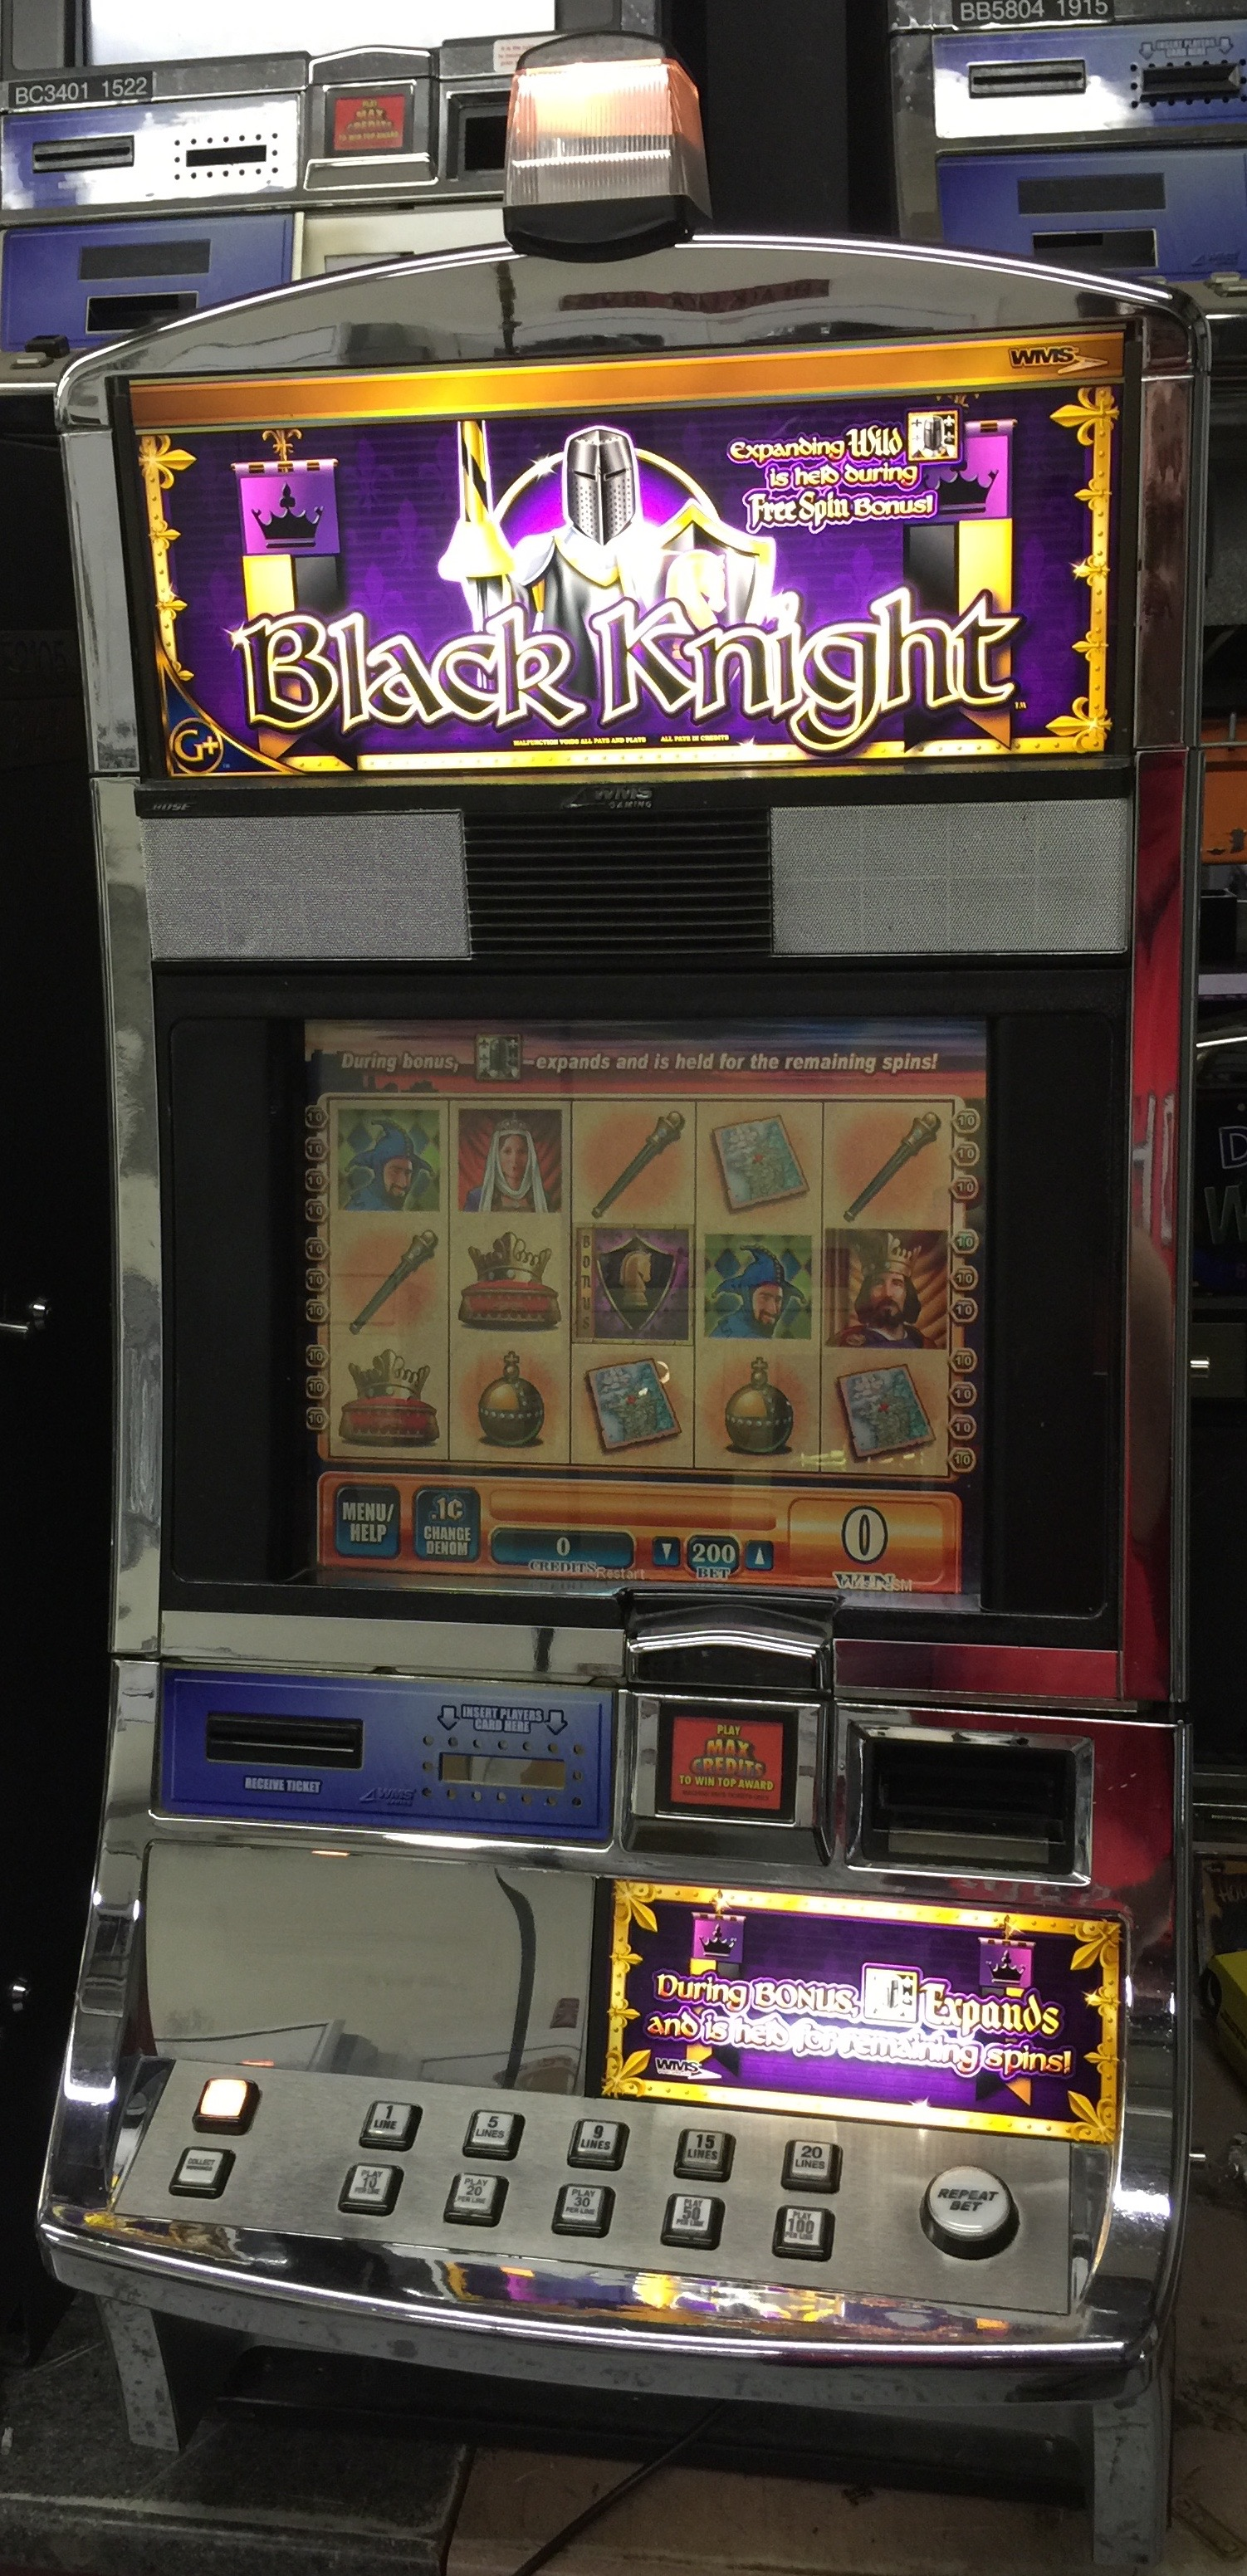 Black Knight Slot Machine